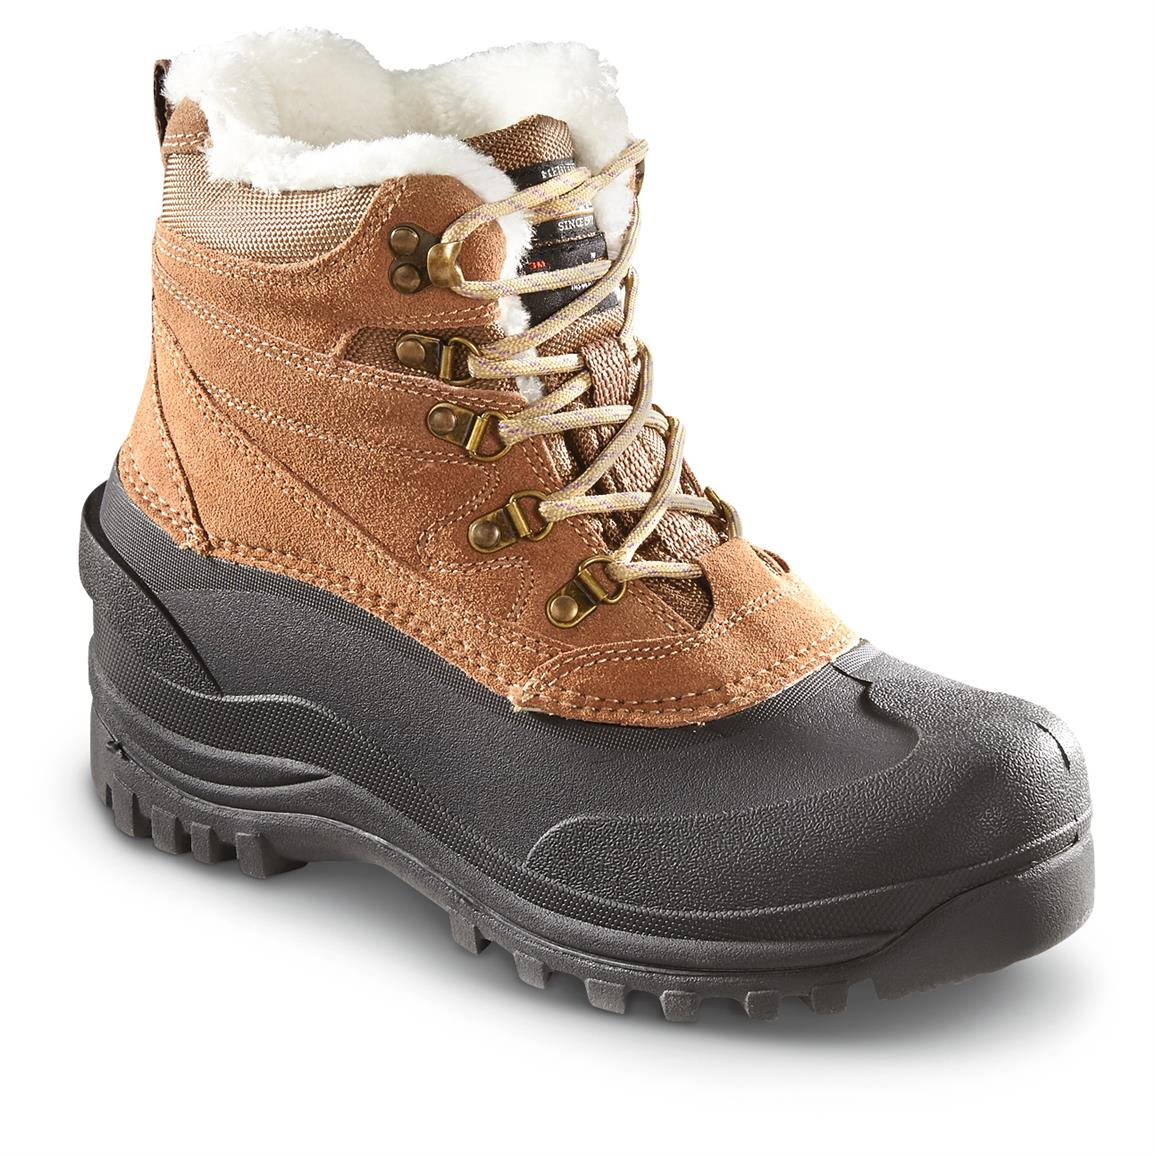 Guide Gear Women's Insulated Lace-up Winter Boots, 400 Grams, Brown